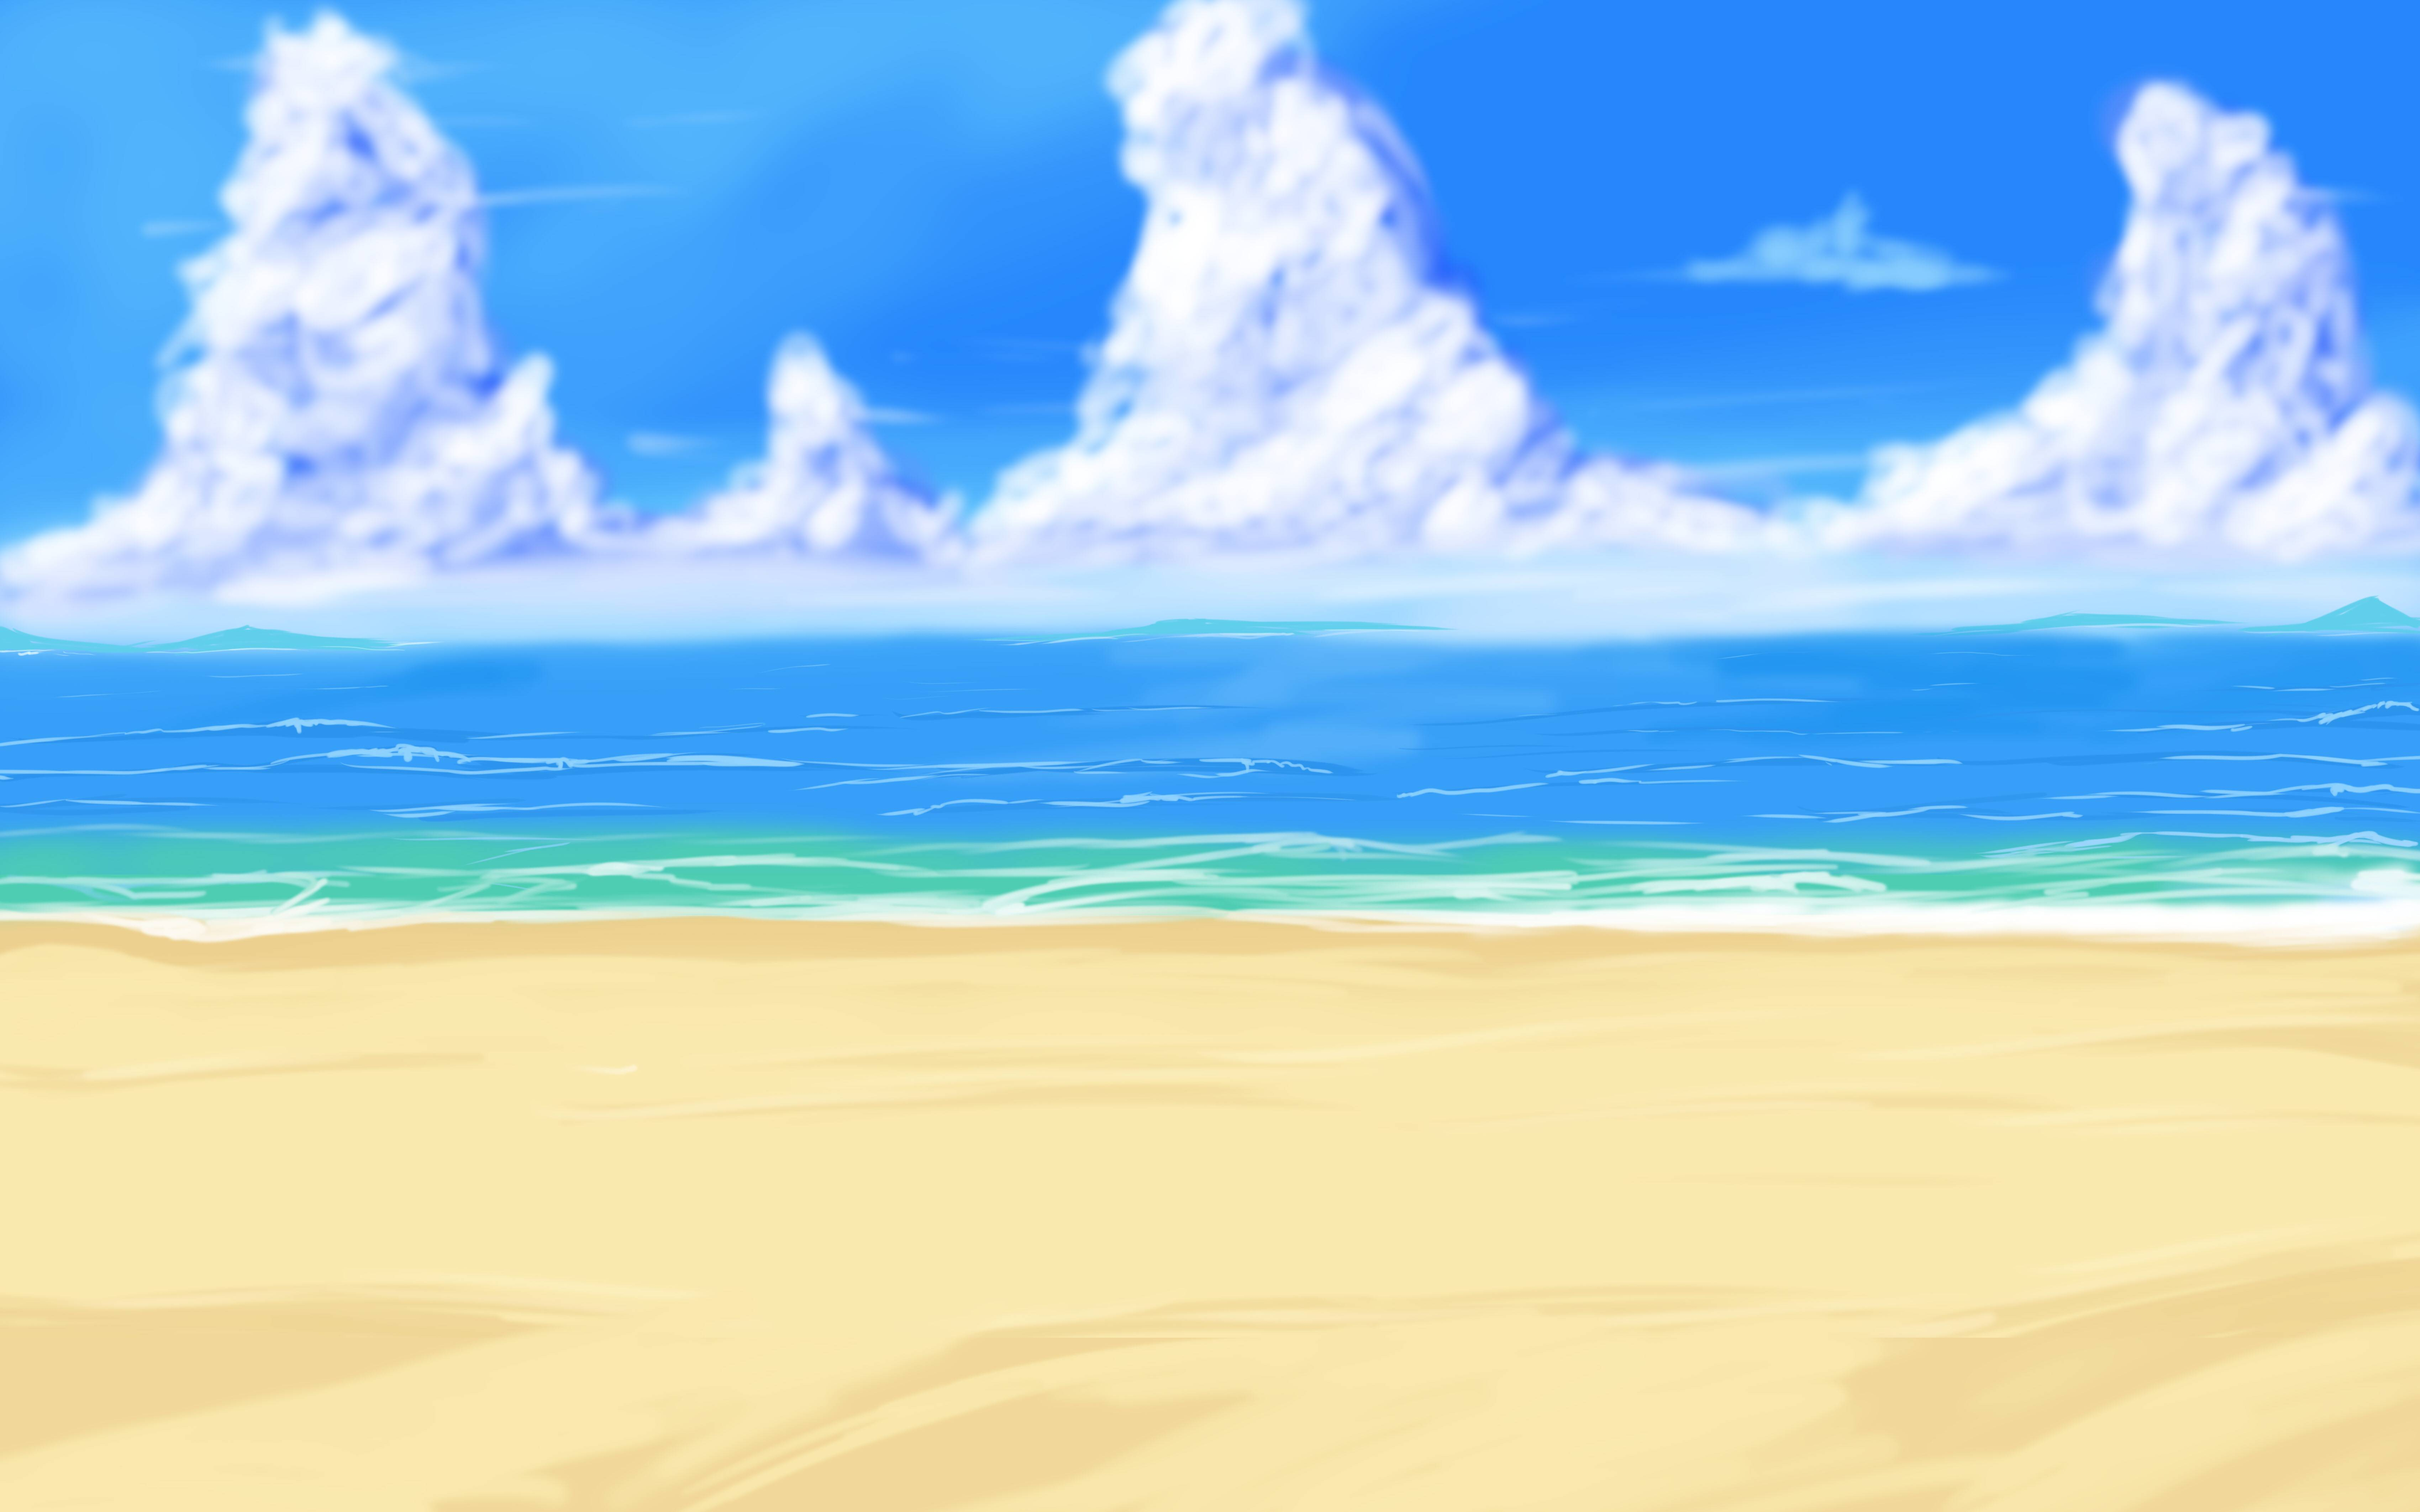 moving beach backgrounds for wallpaper - photo #27